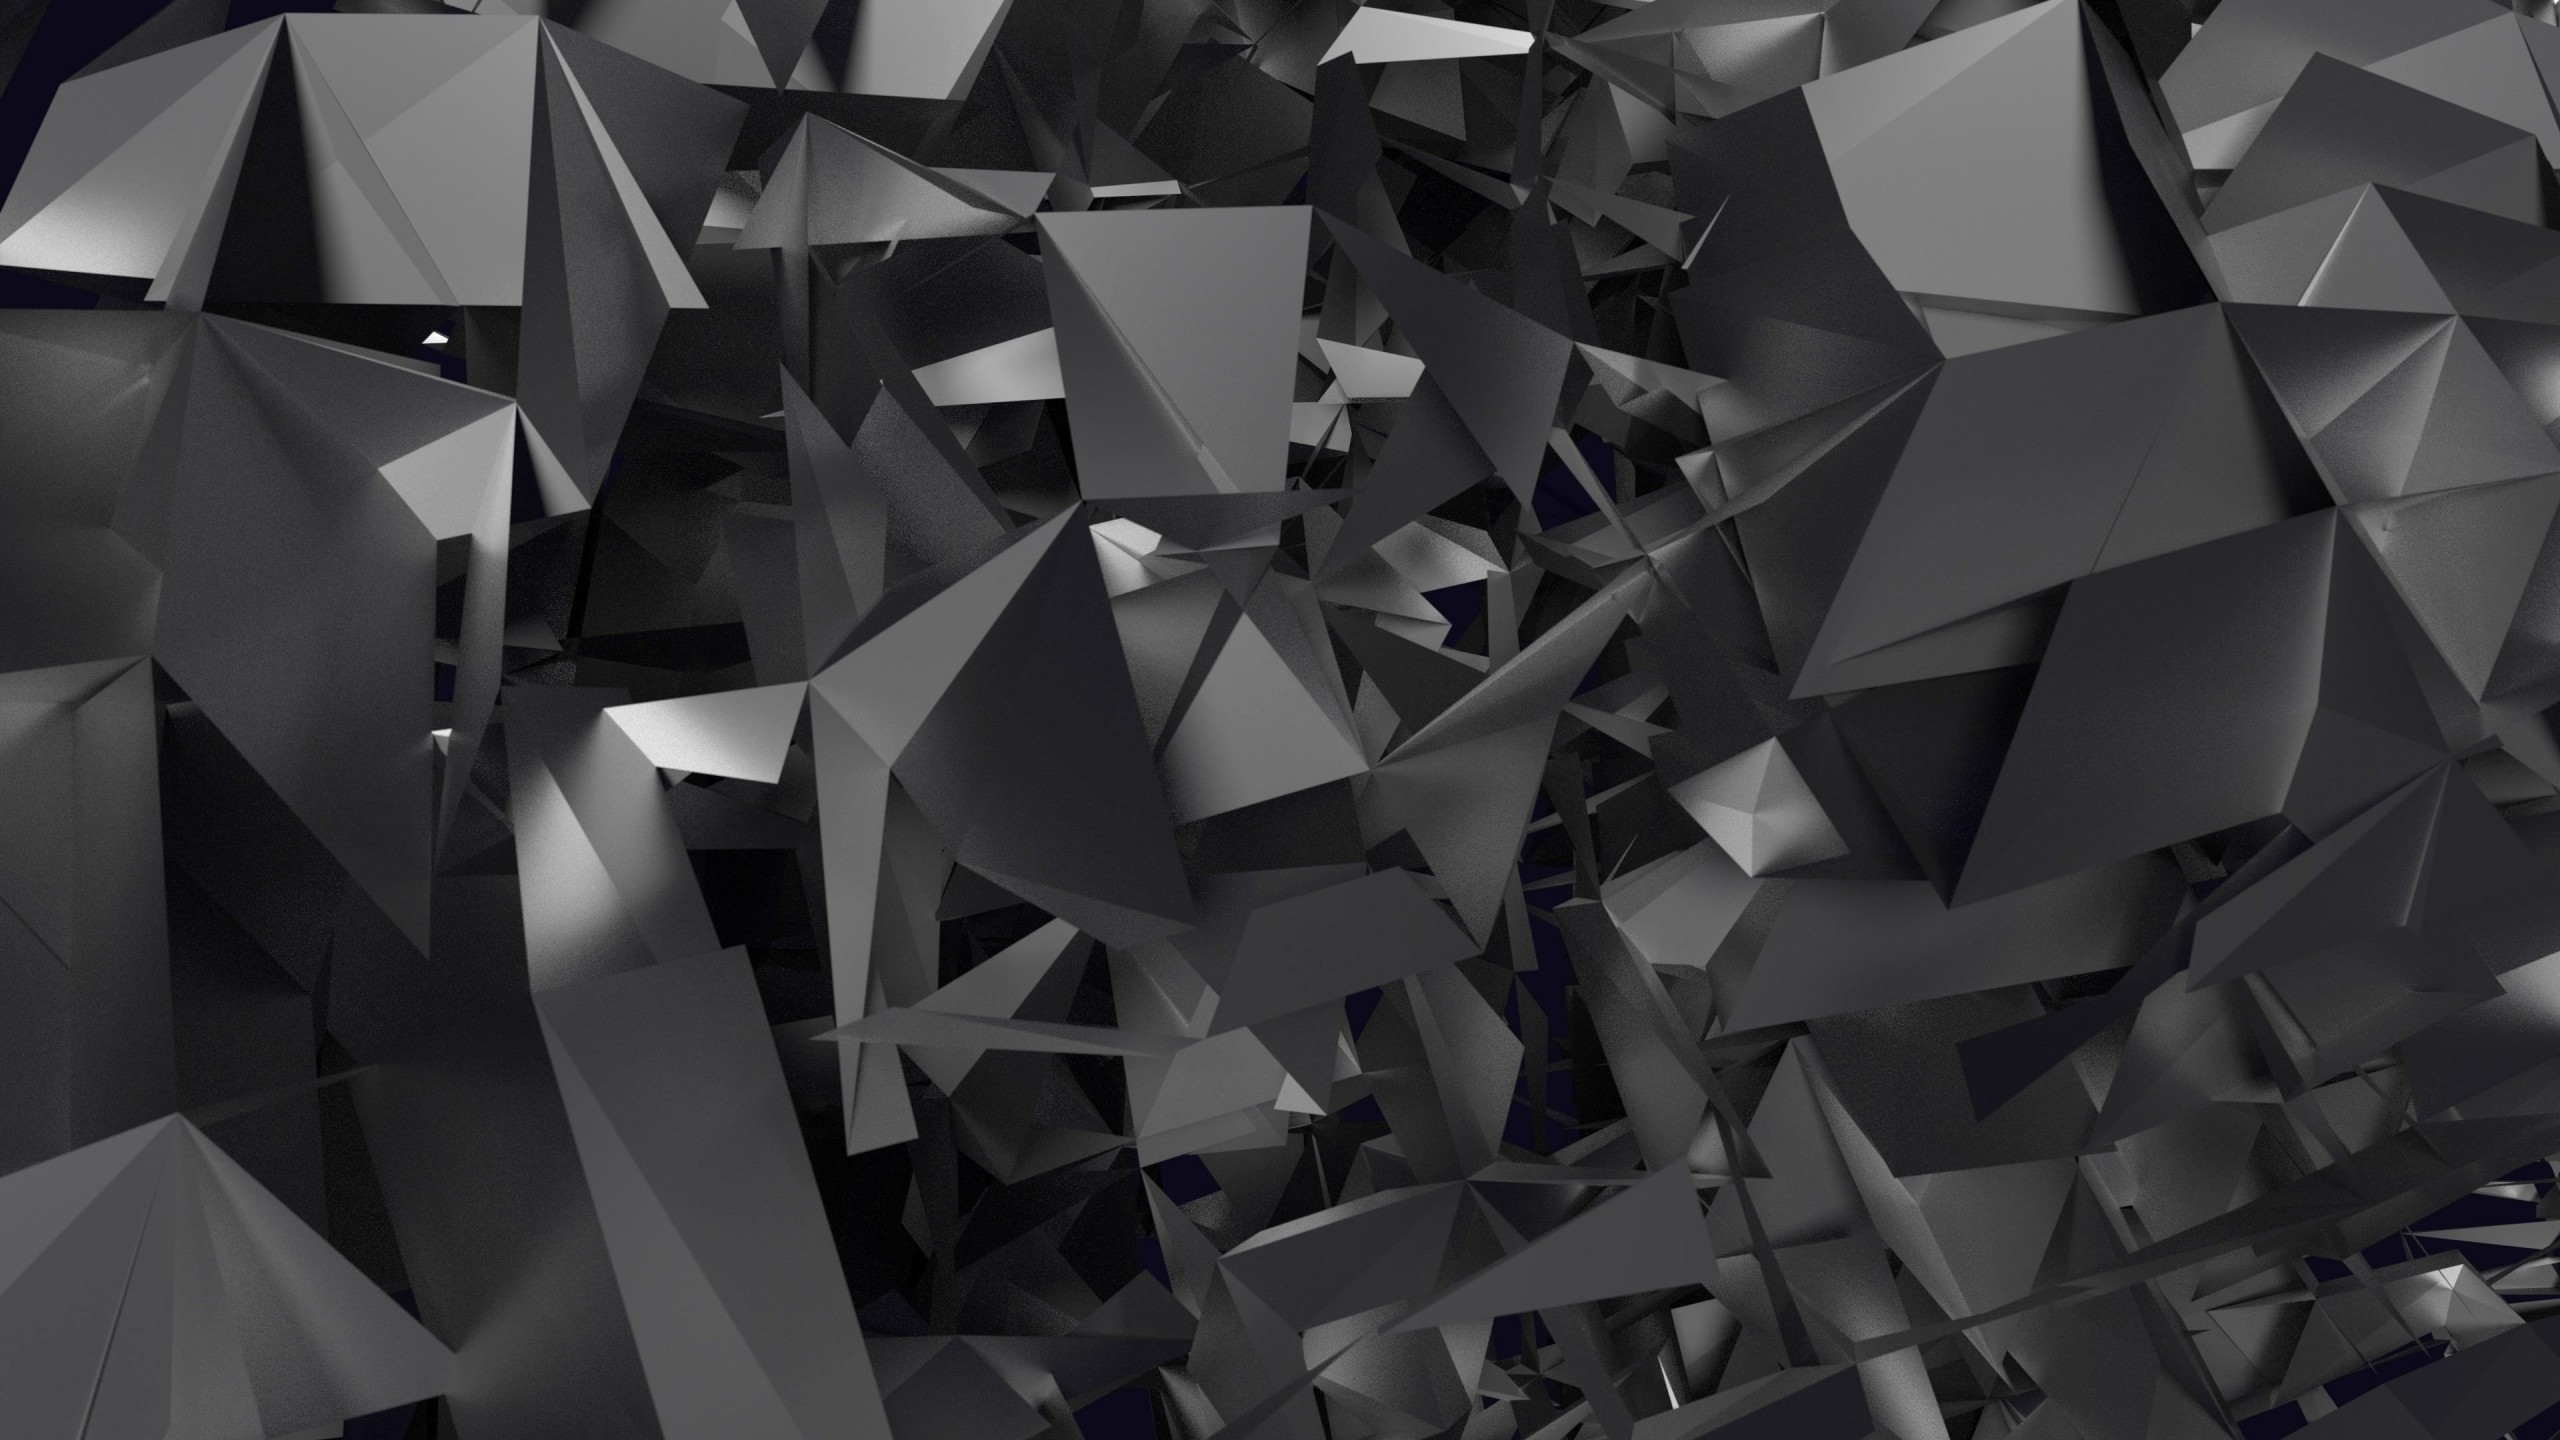 3D Geometry Wallpaper for Desktop 2560x1440